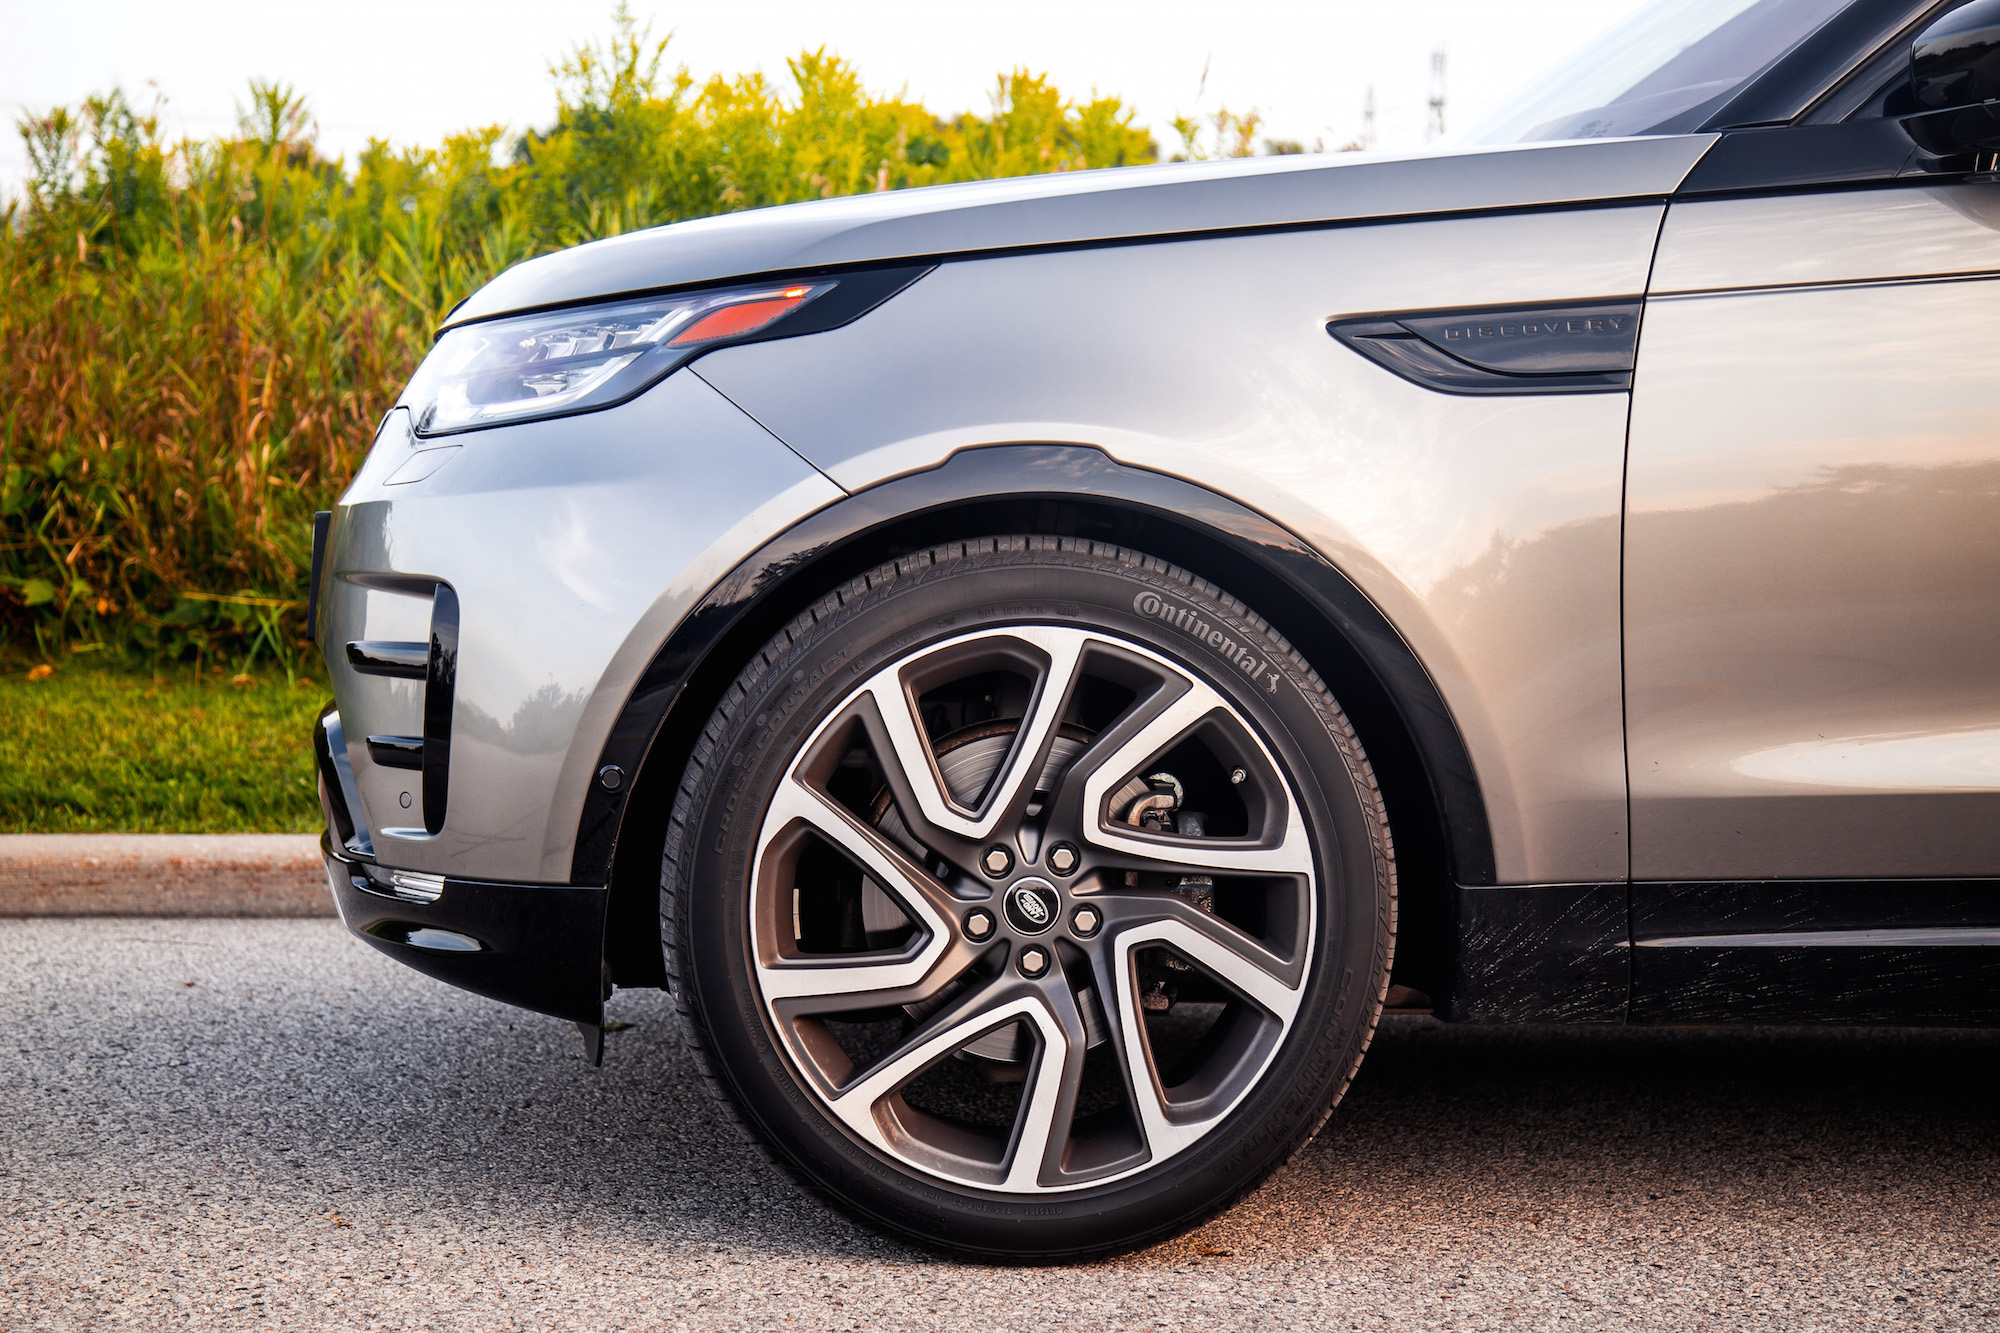 penske land detail new sport rover at wheels landrover hse discovery tristate